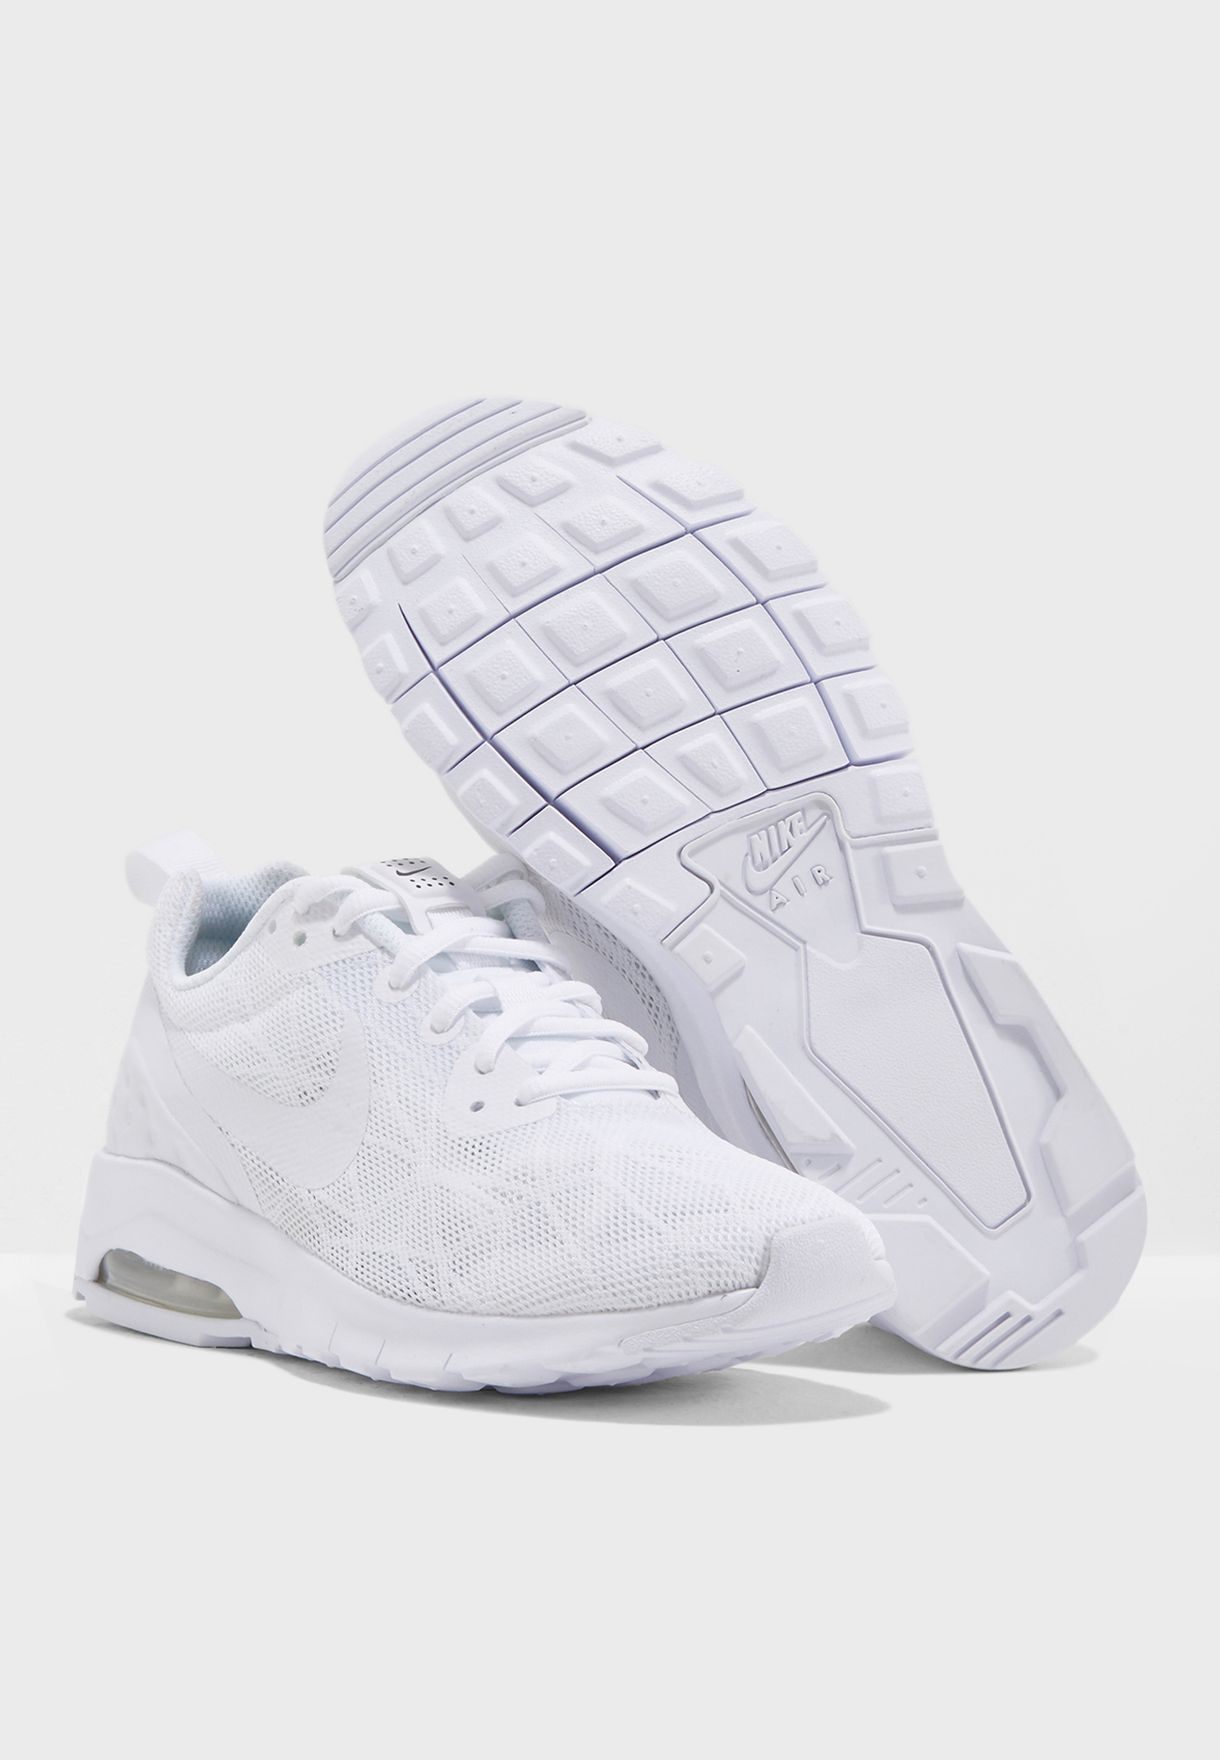 17cce879d2 Shop Nike white Air Max Motion LW SE 844895-101 for Women in UAE ...